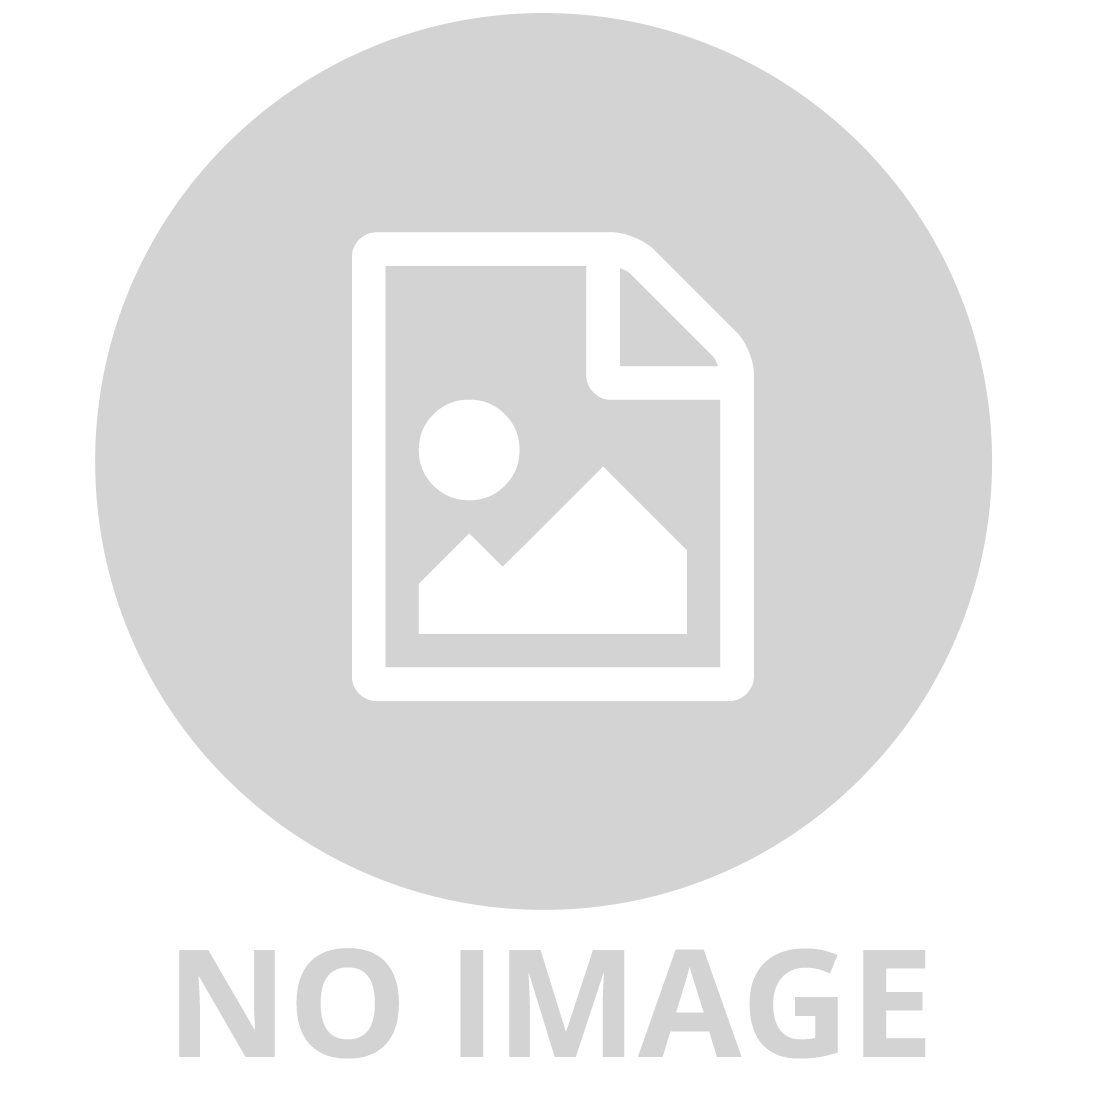 PAINT YOUR OWN MY HORSE